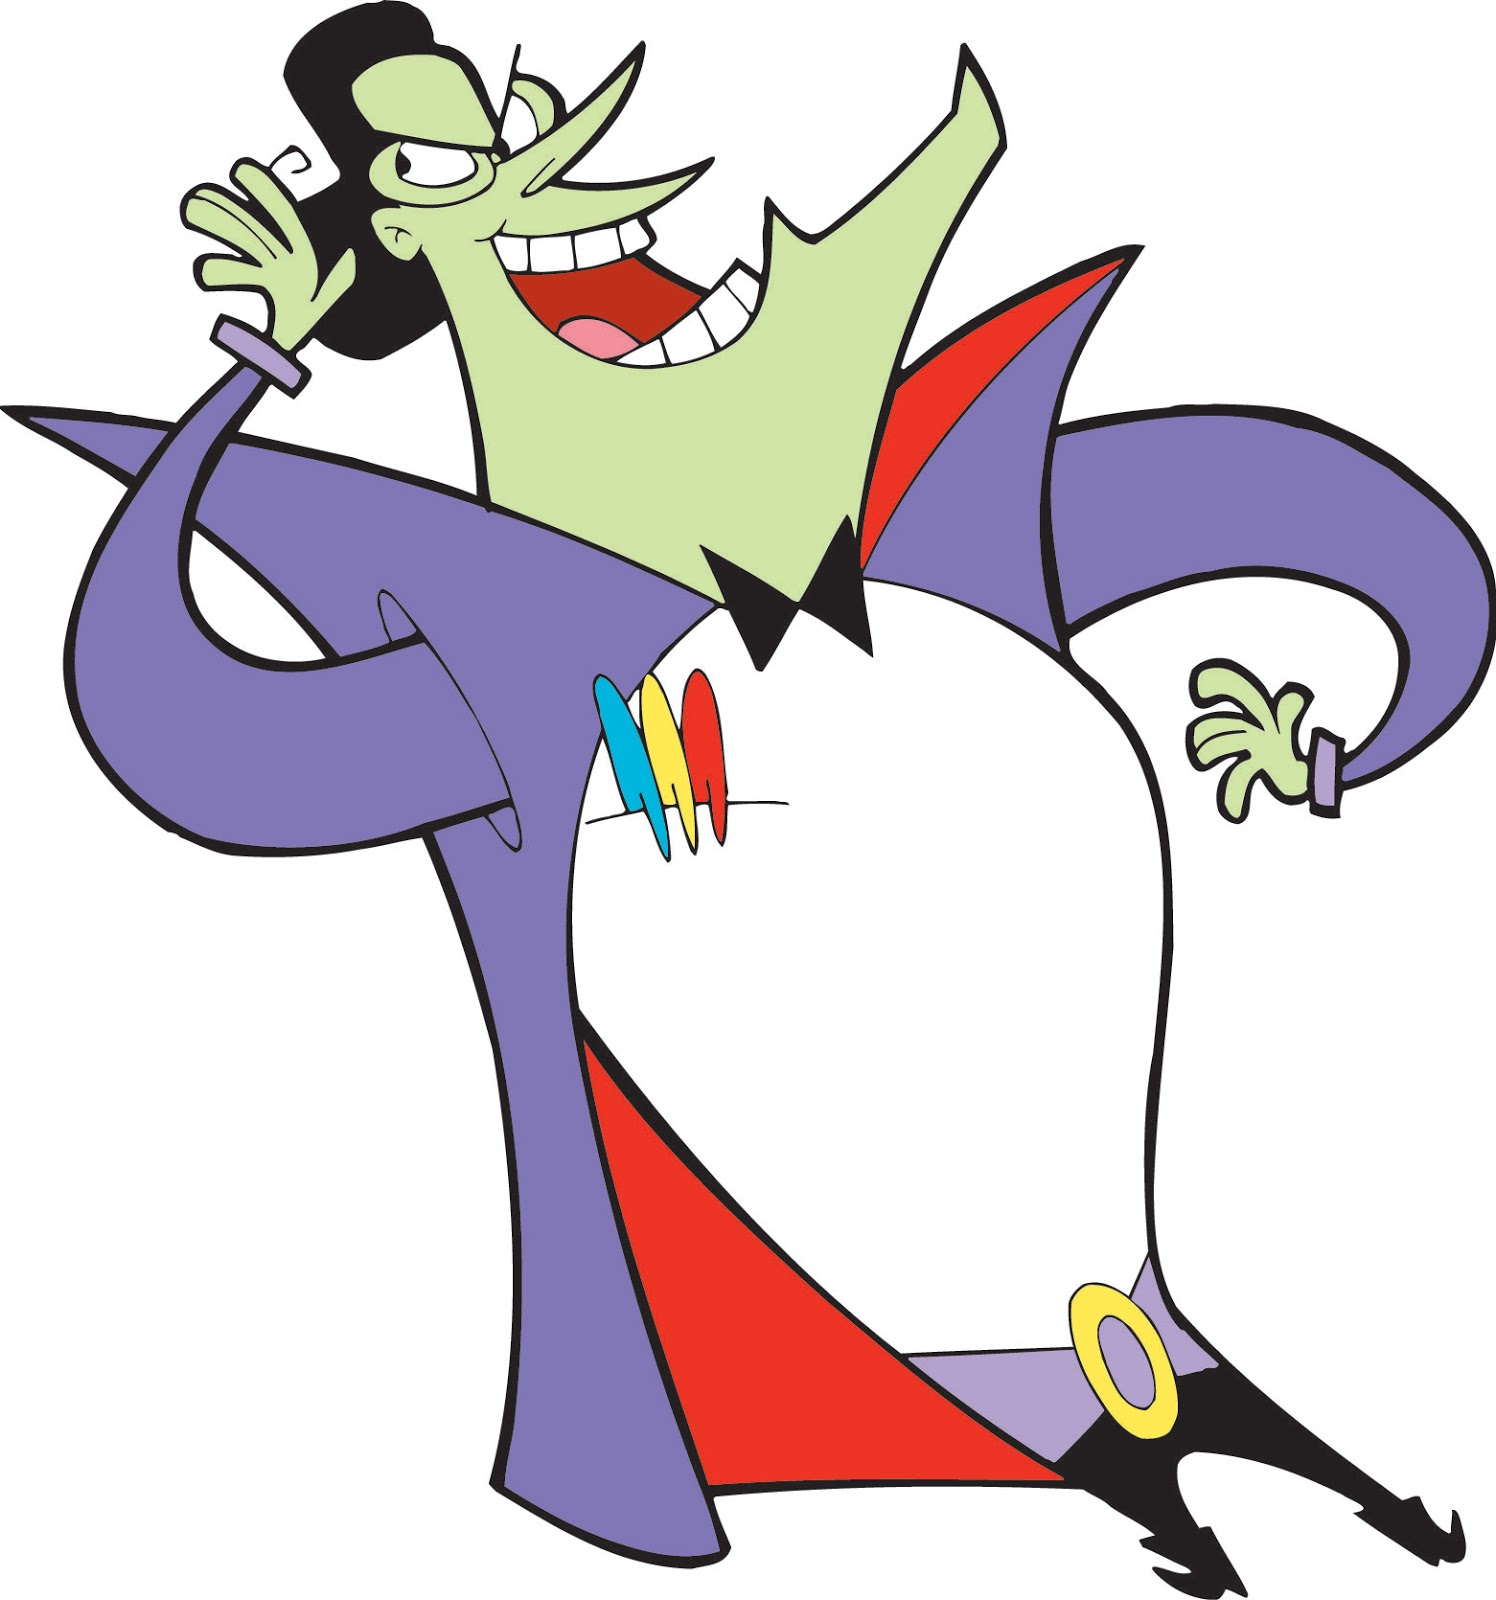 Cartoon Characters 02 : Cartoon characters cyberchase images